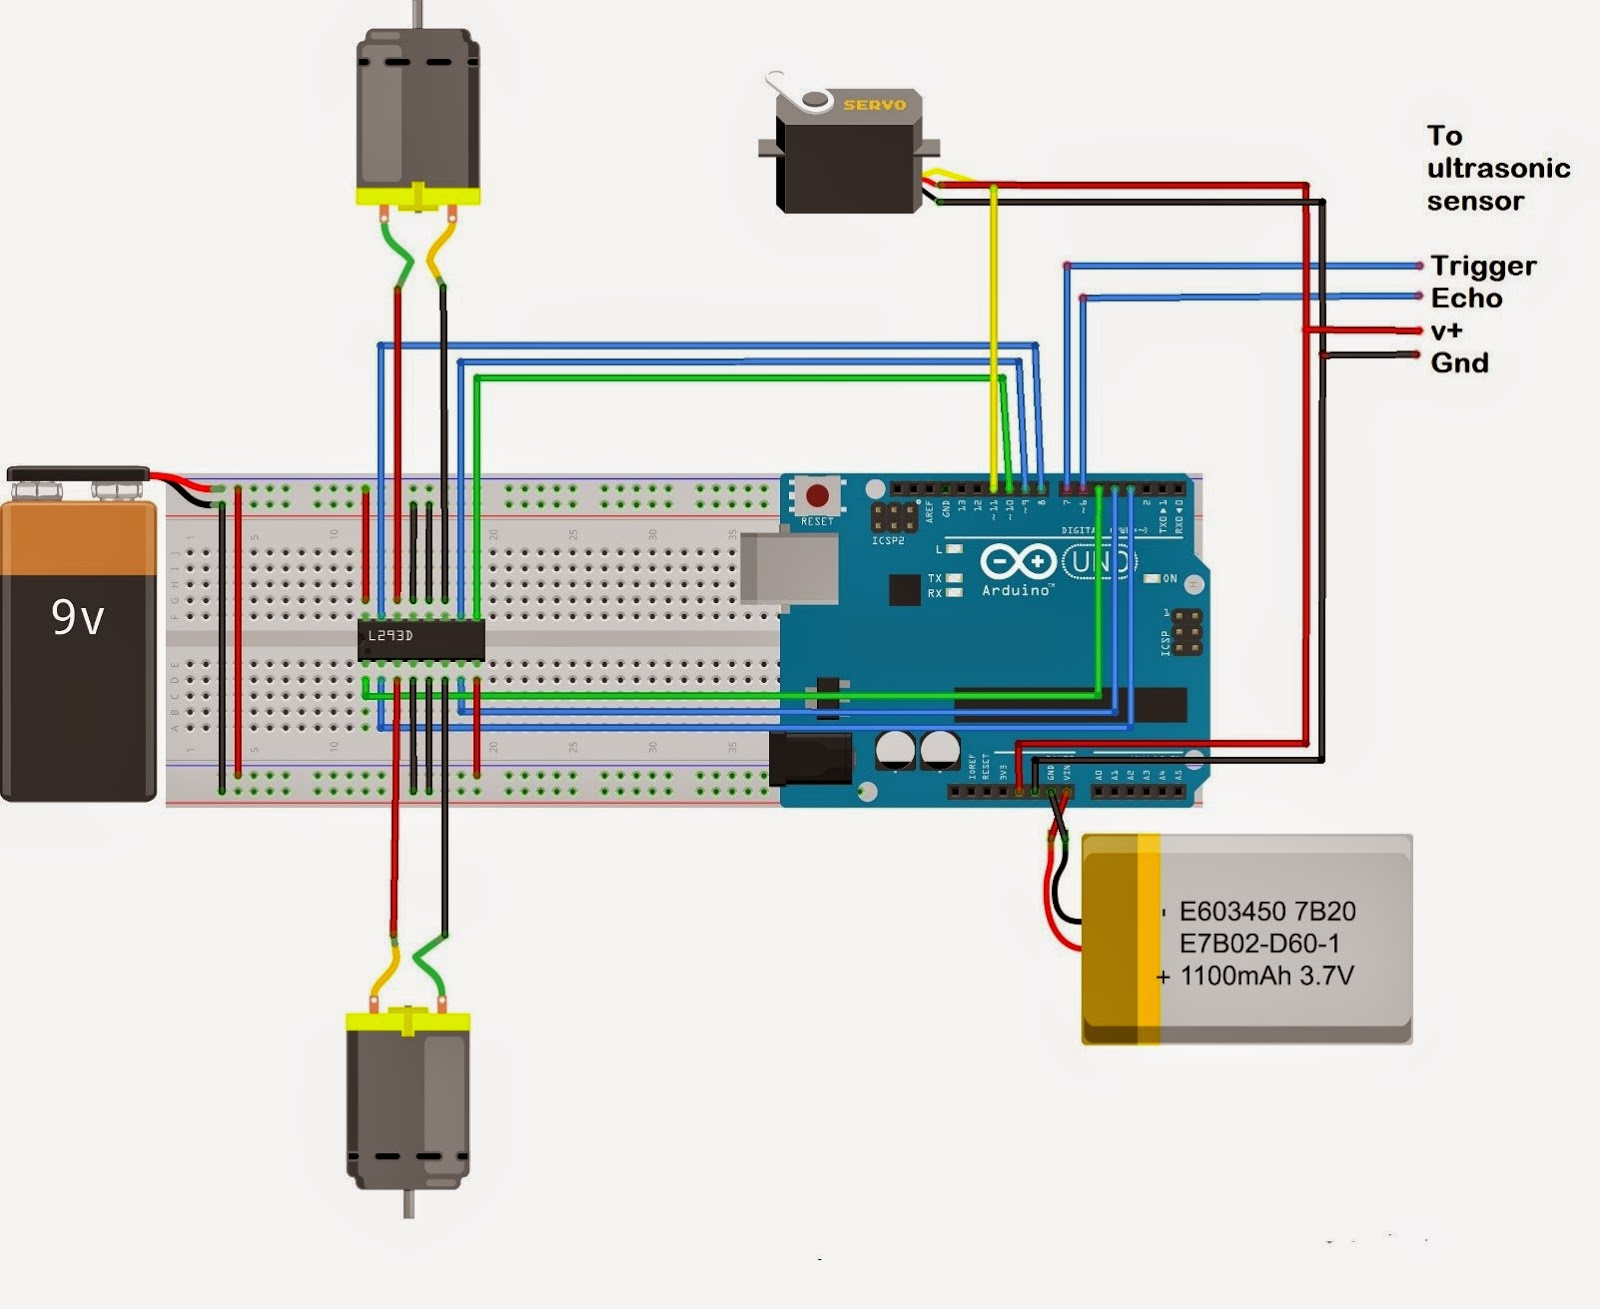 pin 7 arduino muscles of the lower back and buttocks diagram control a dc motor with l293d chip